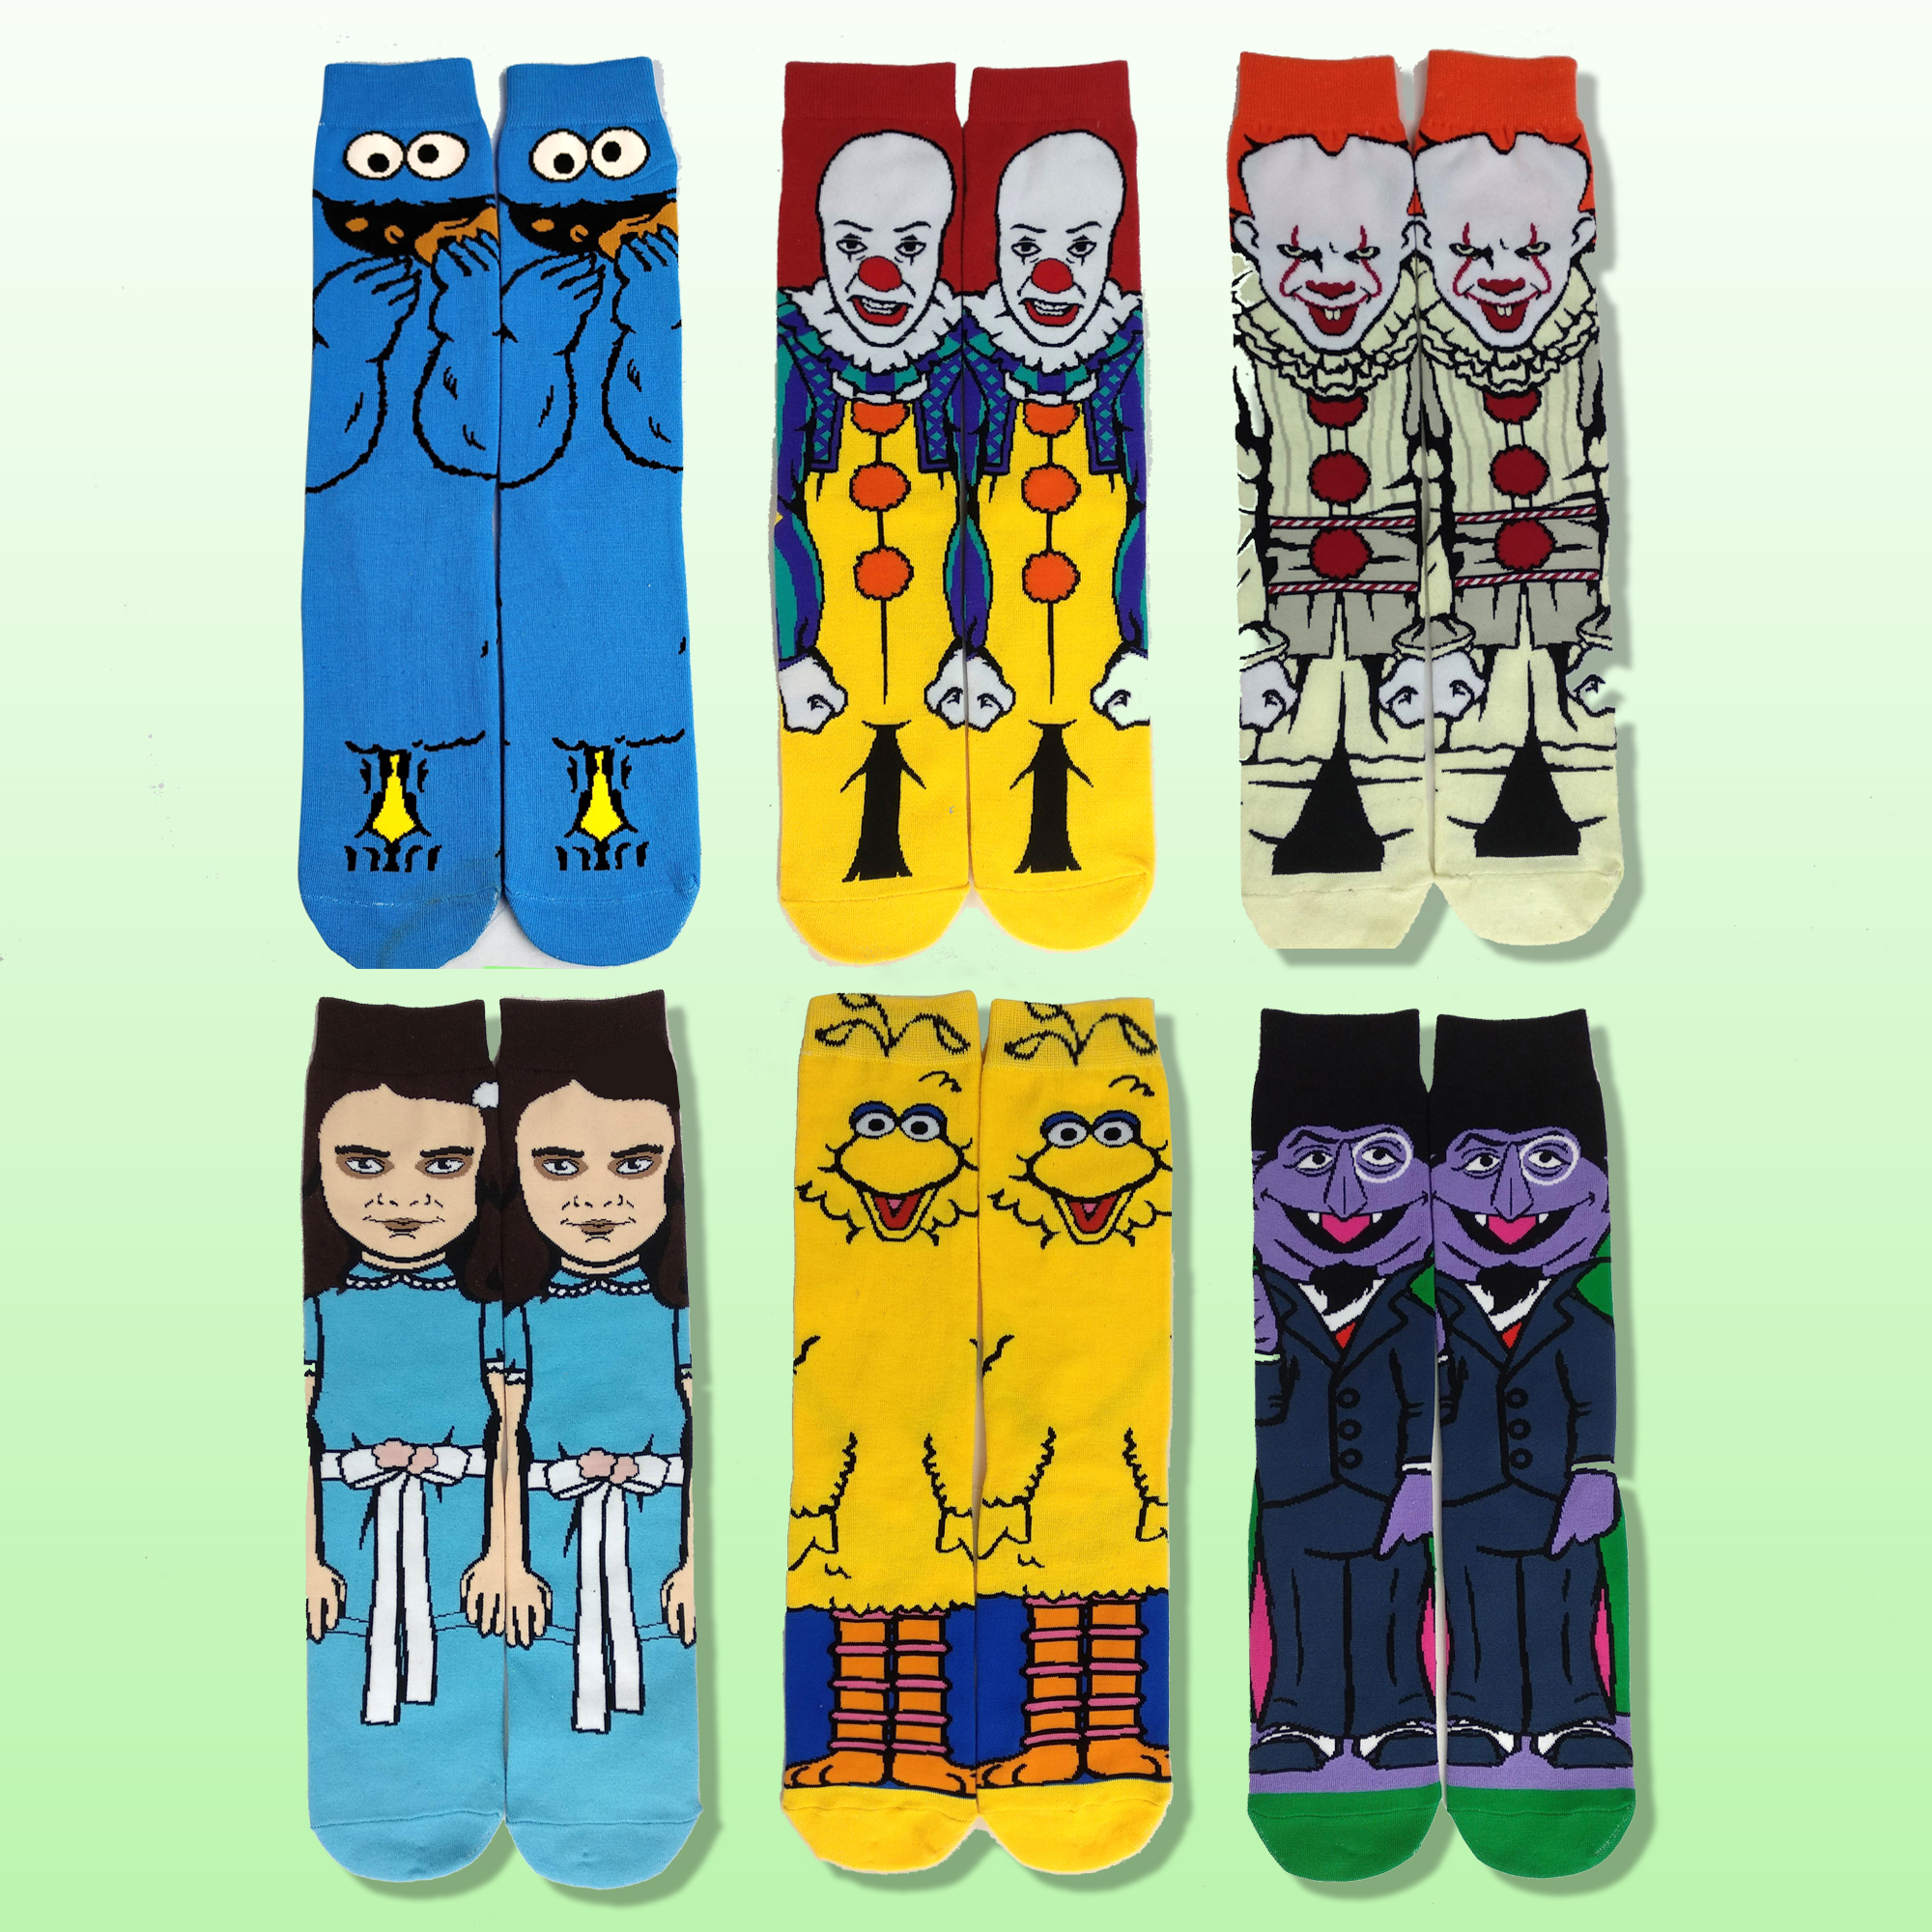 Cartoon Crazy Socks Men Fashion Personalized Tube Socks Casual Comfort Breathable Warm  Yellow Blue Cotton Funny Dress Socks